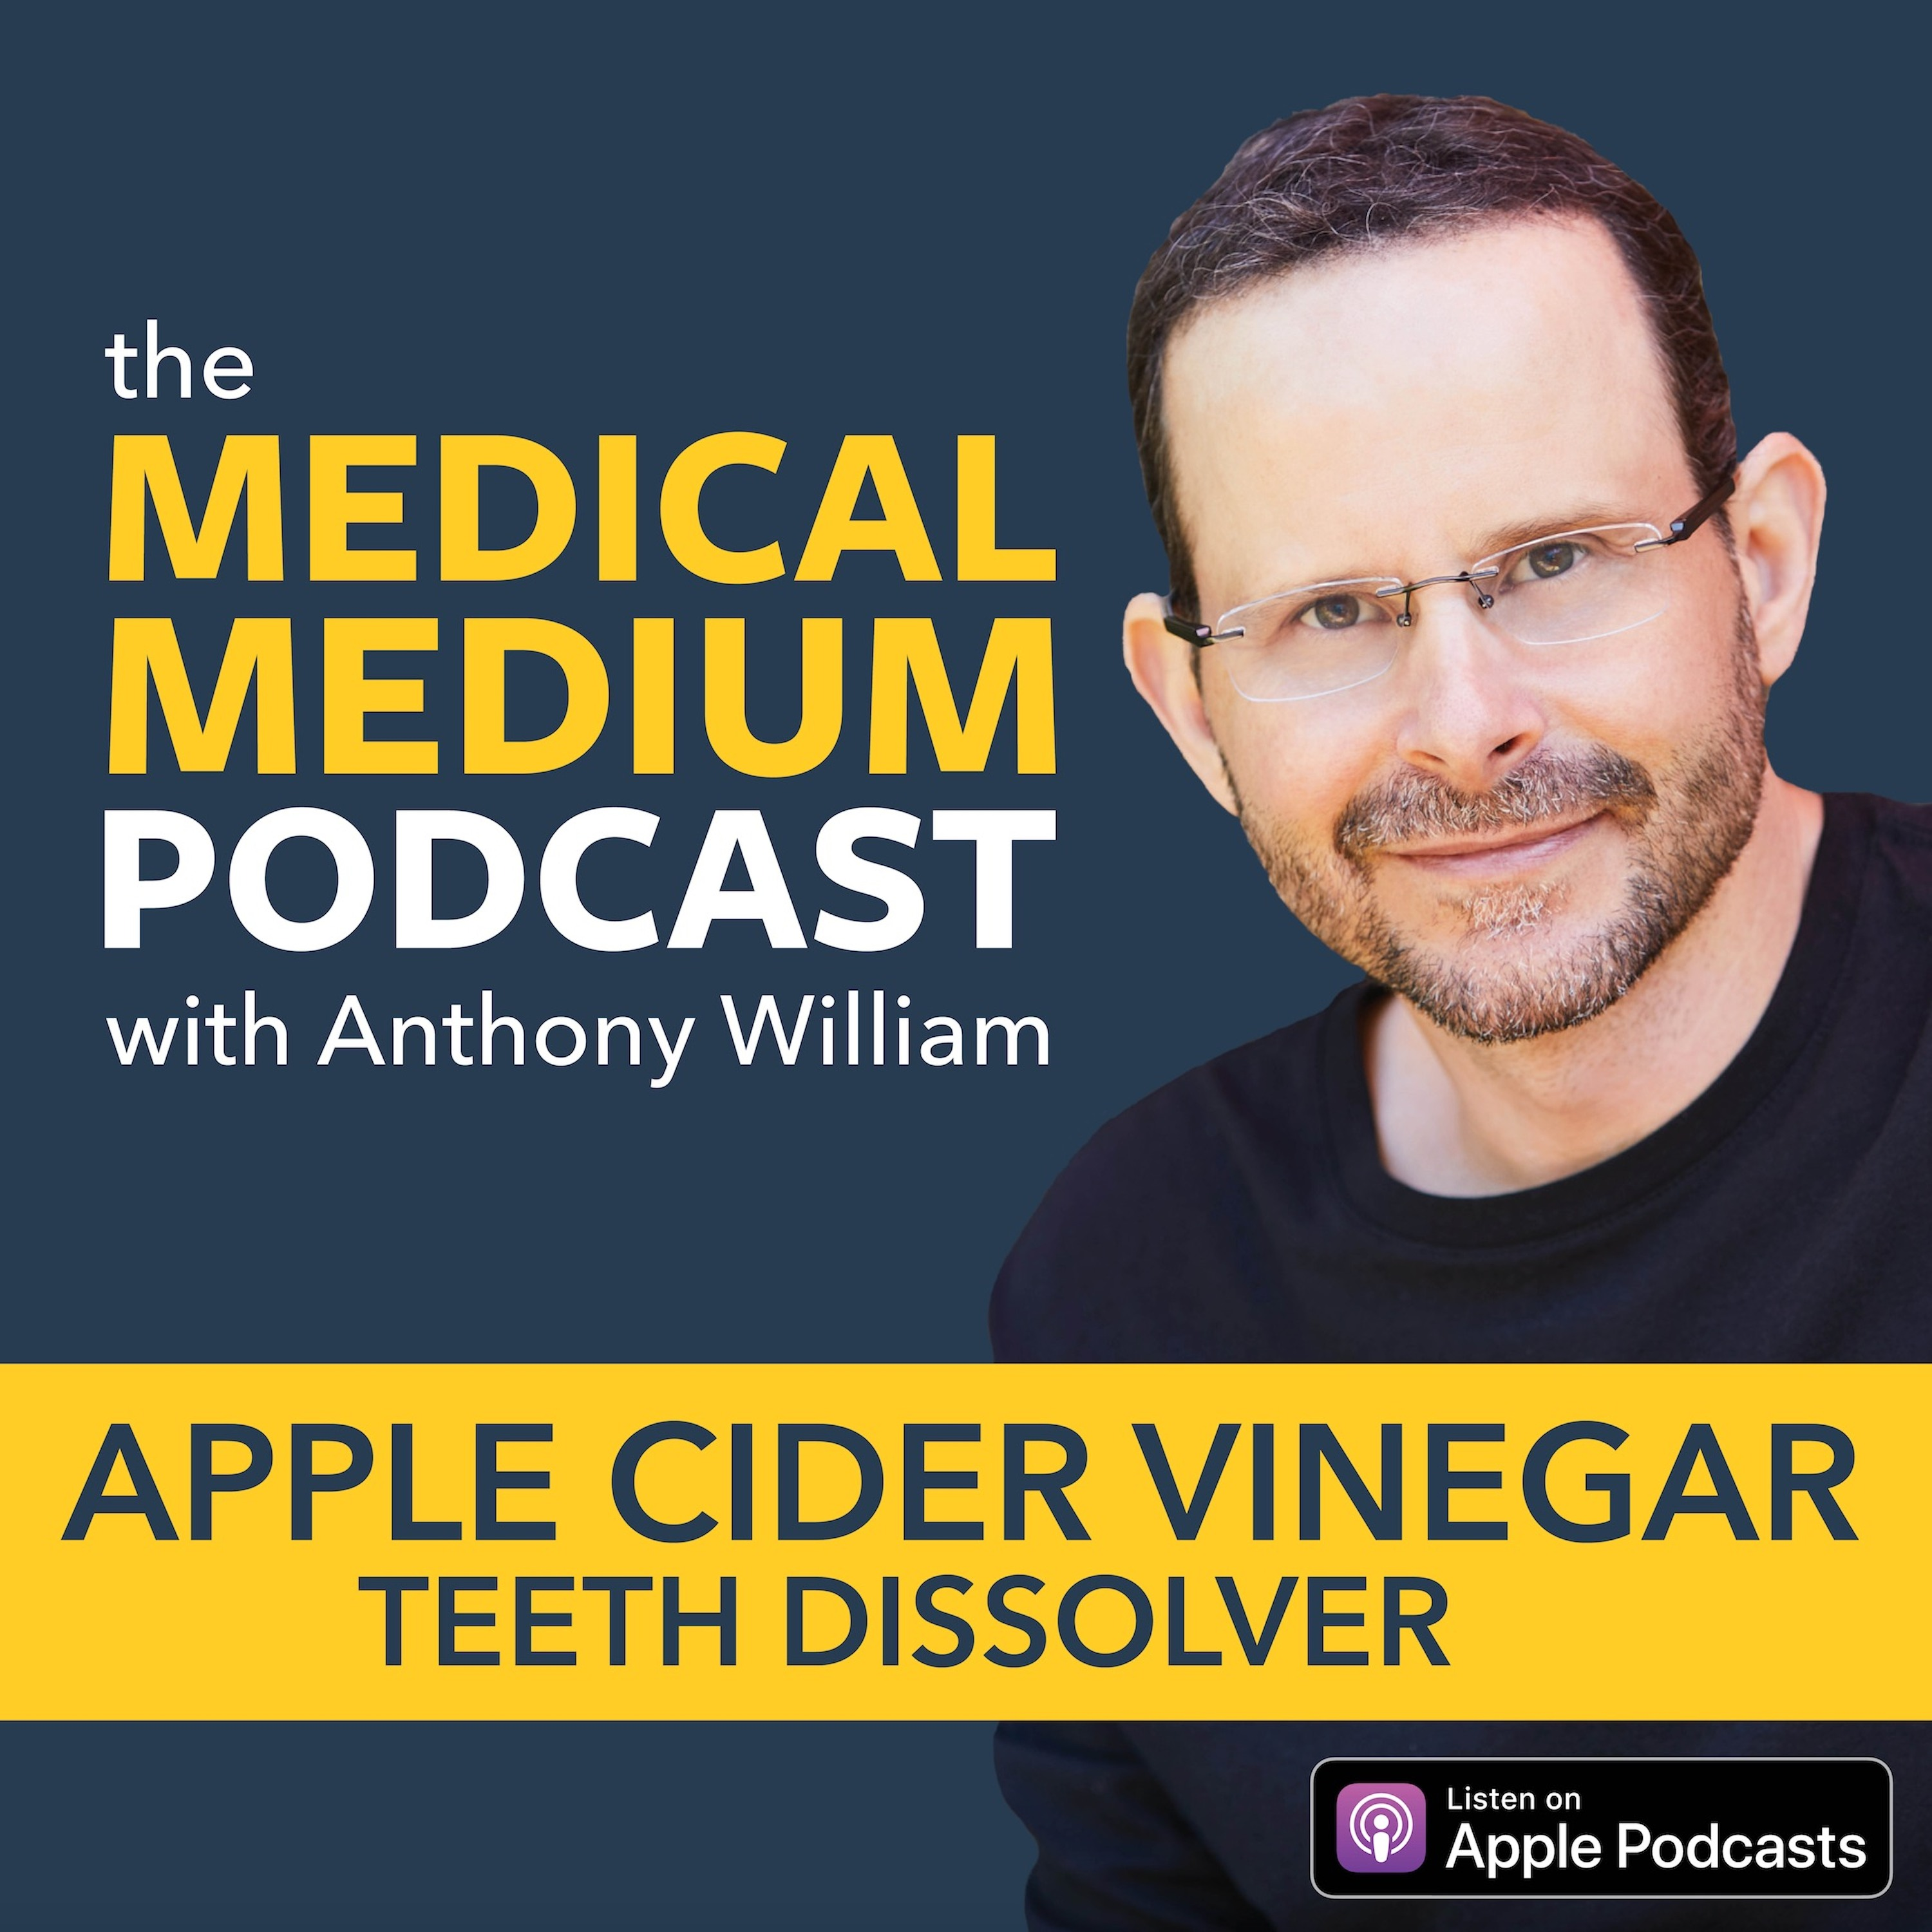 011 Apple Cider Vinegar: Teeth Dissolver